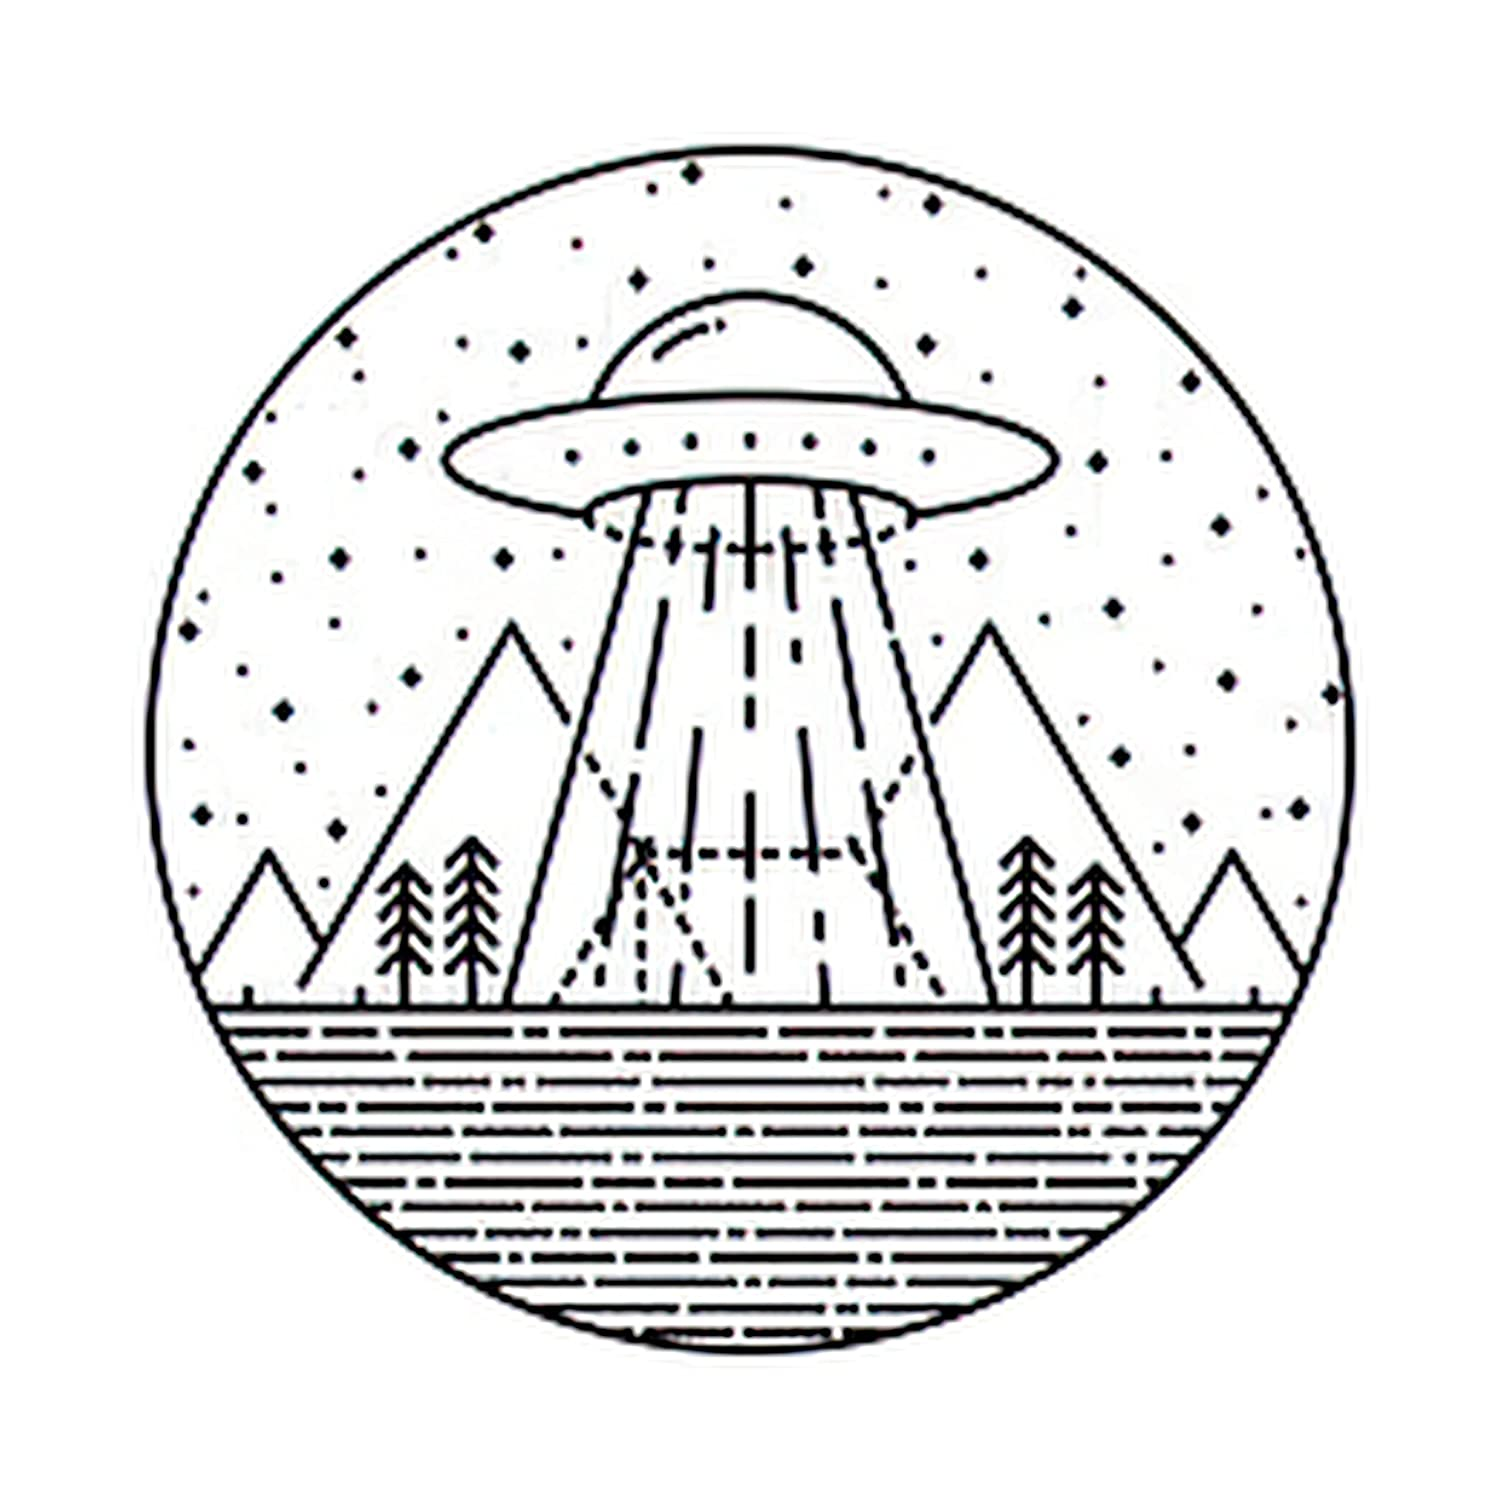 Topics on TV 6 Sheets Temporary Tattoos Ufo Alien Nature W Wholesale Invasion Hike Camp